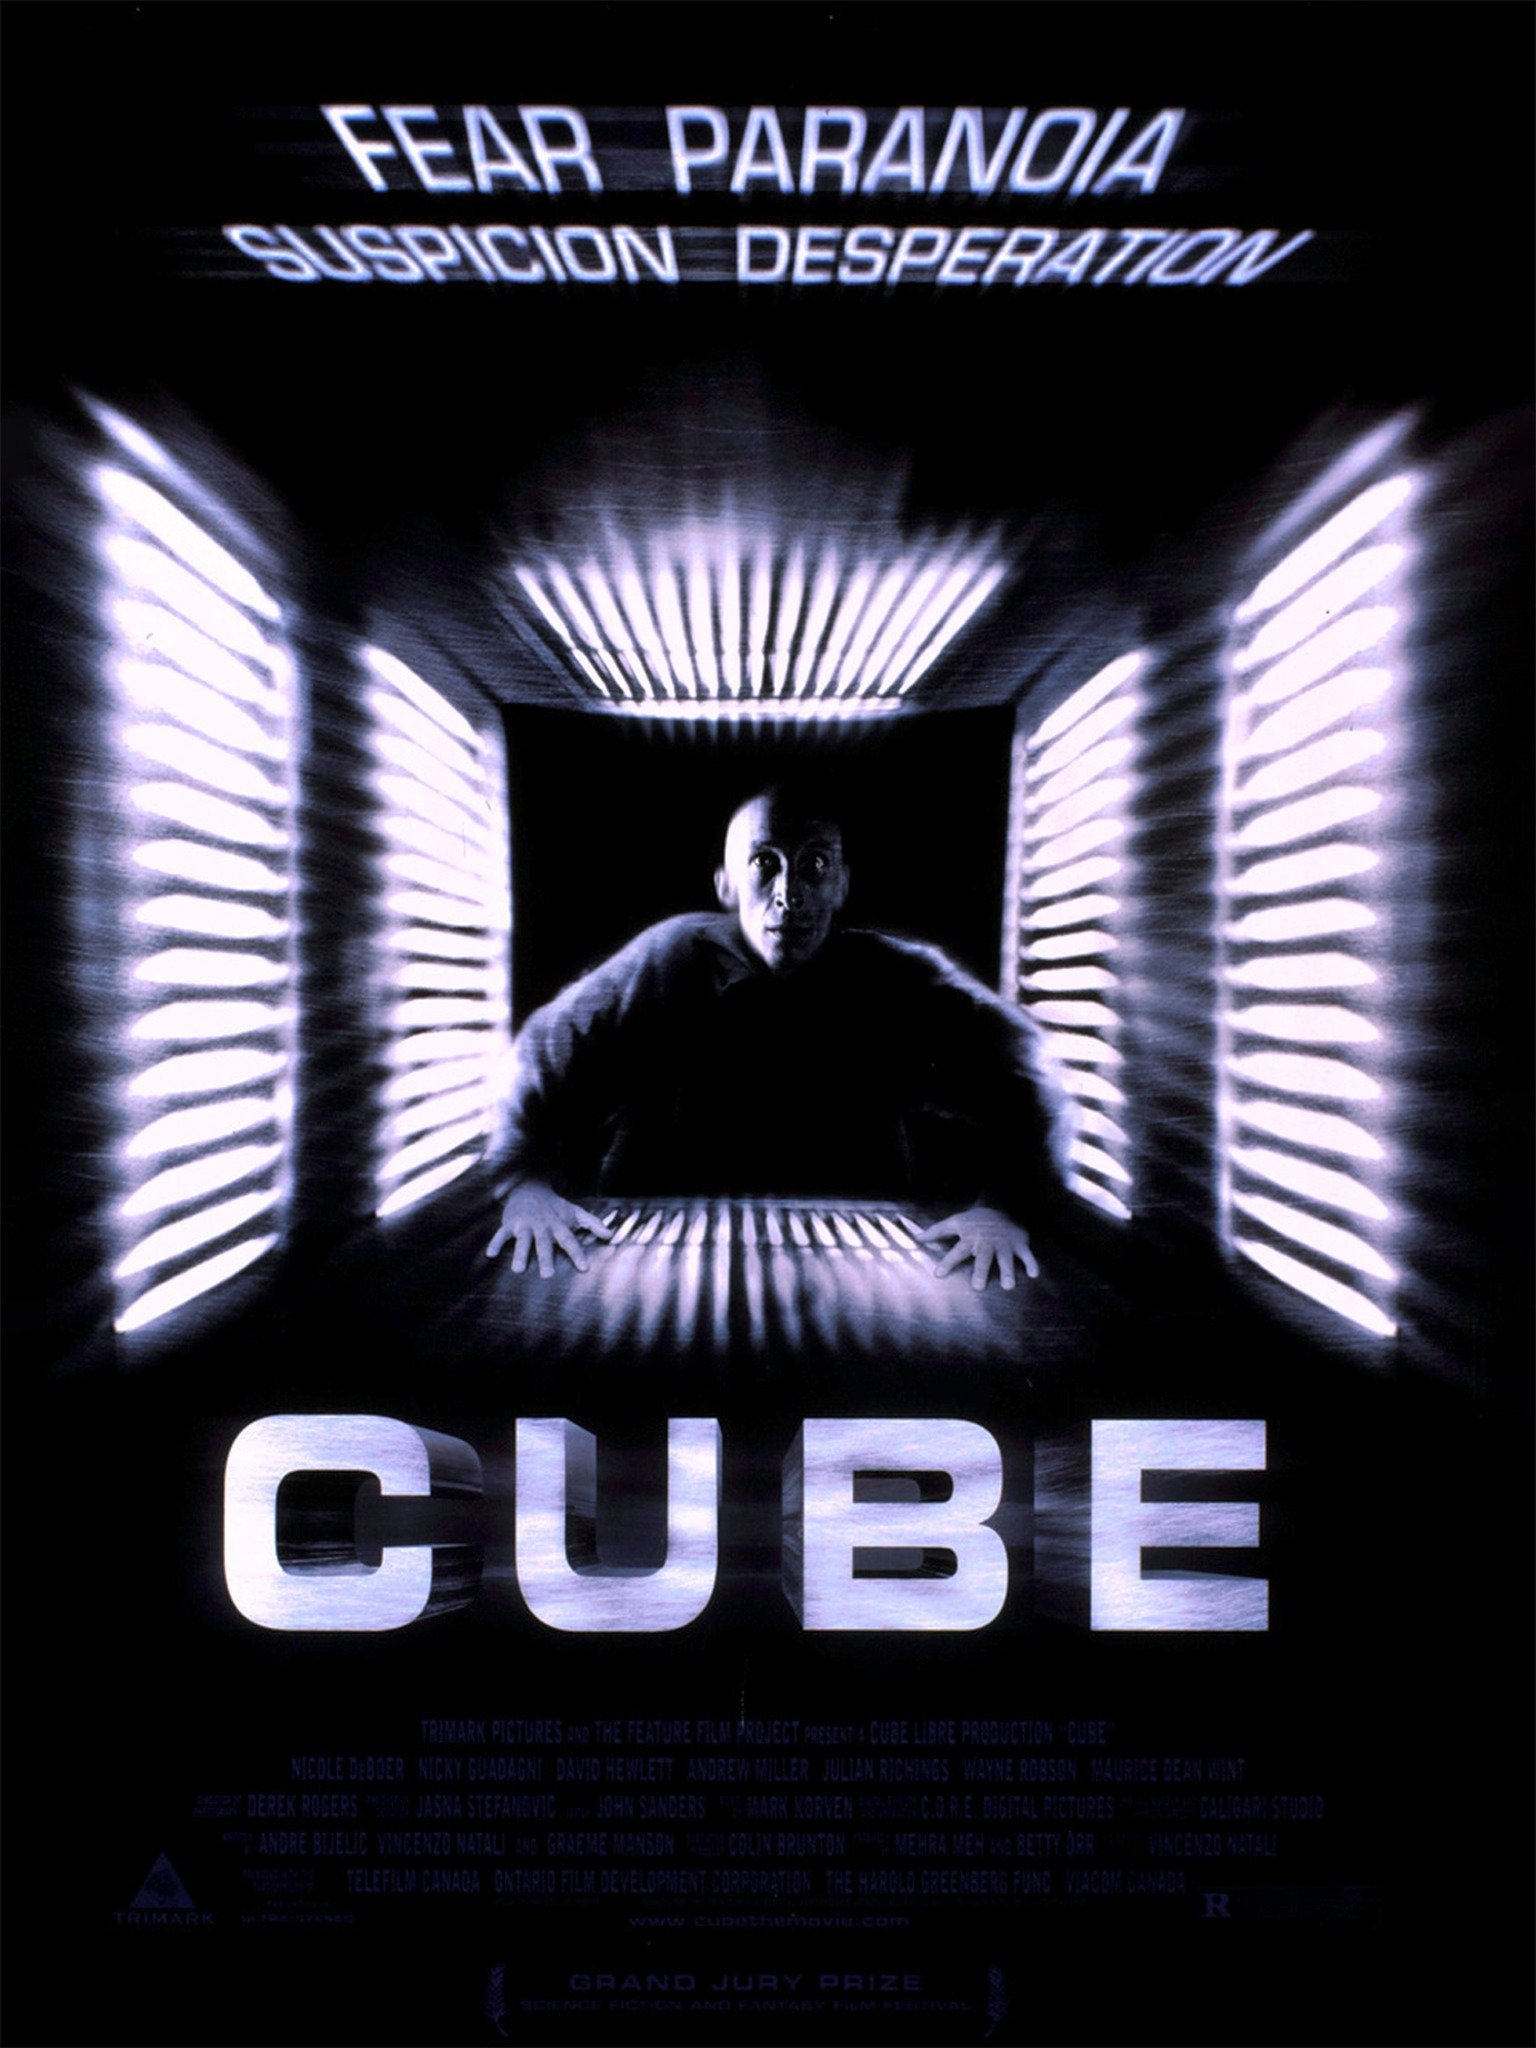 cube 1997 movie poster